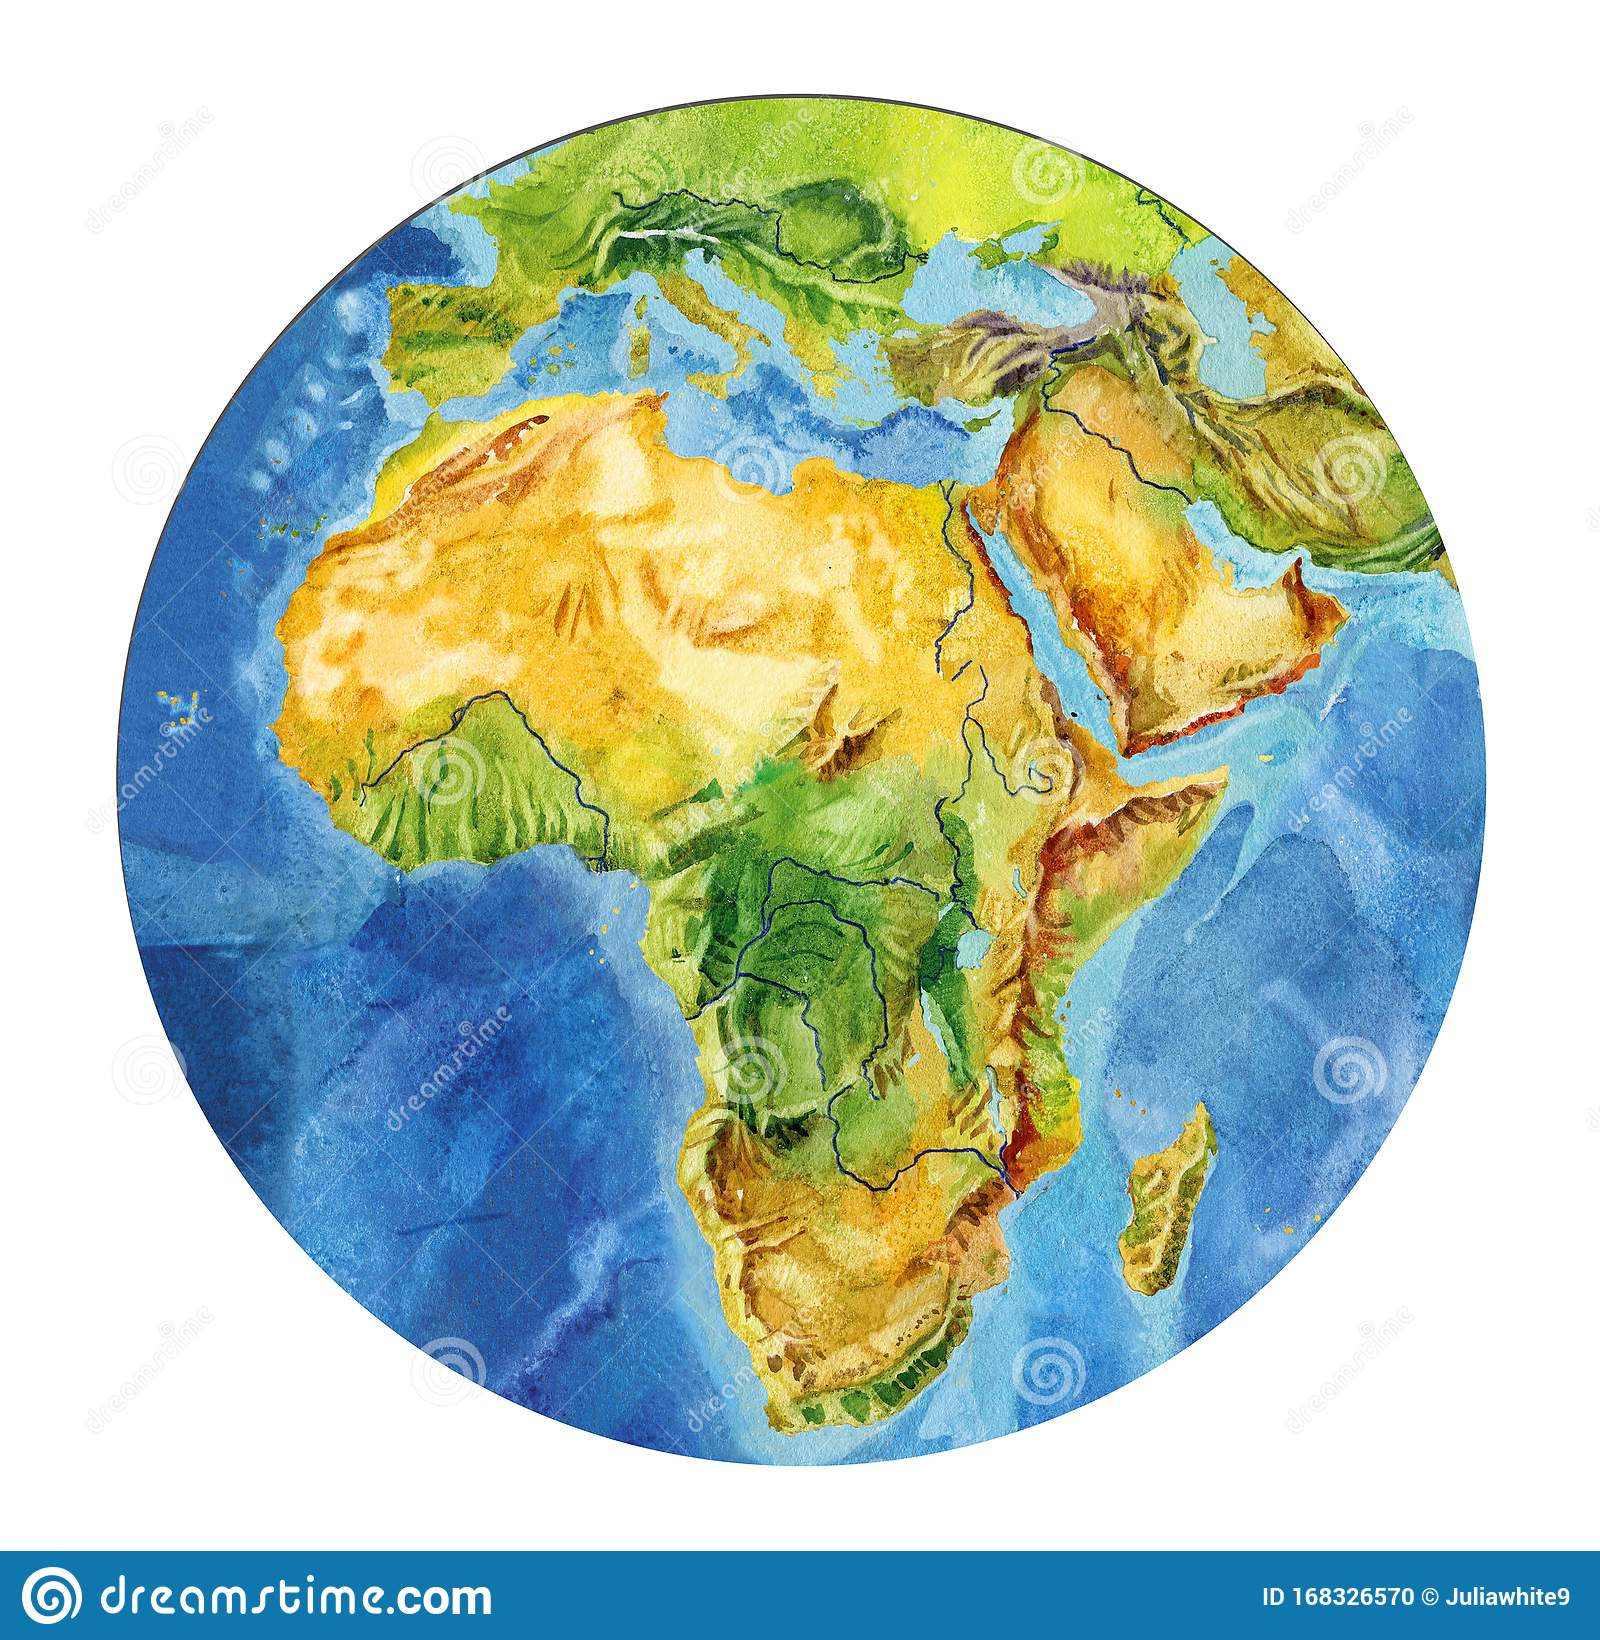 Image of: Geographical Map Of The World Fragment Of Africa Asia Europe Arabian Peninsula In The Round Shape Realistic Watercolor Stock Illustration Illustration Of Geography Geographical 168326570